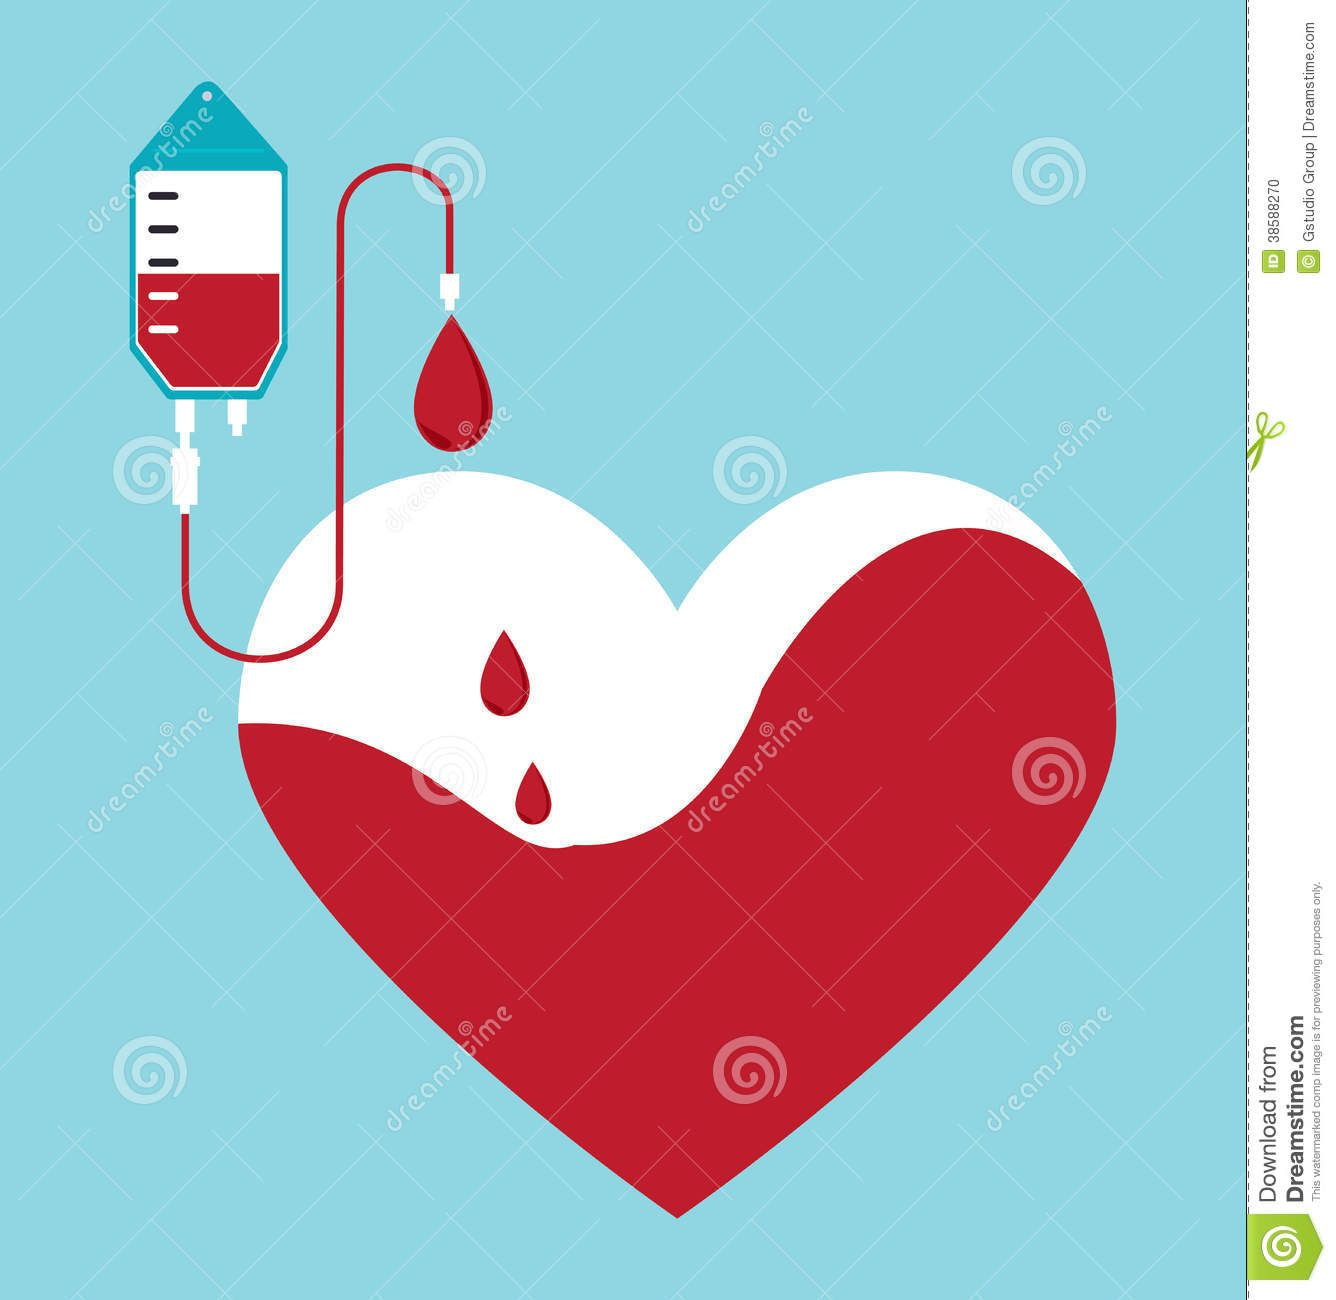 small resolution of donating blood posters posters on blood donation clipart clipart email